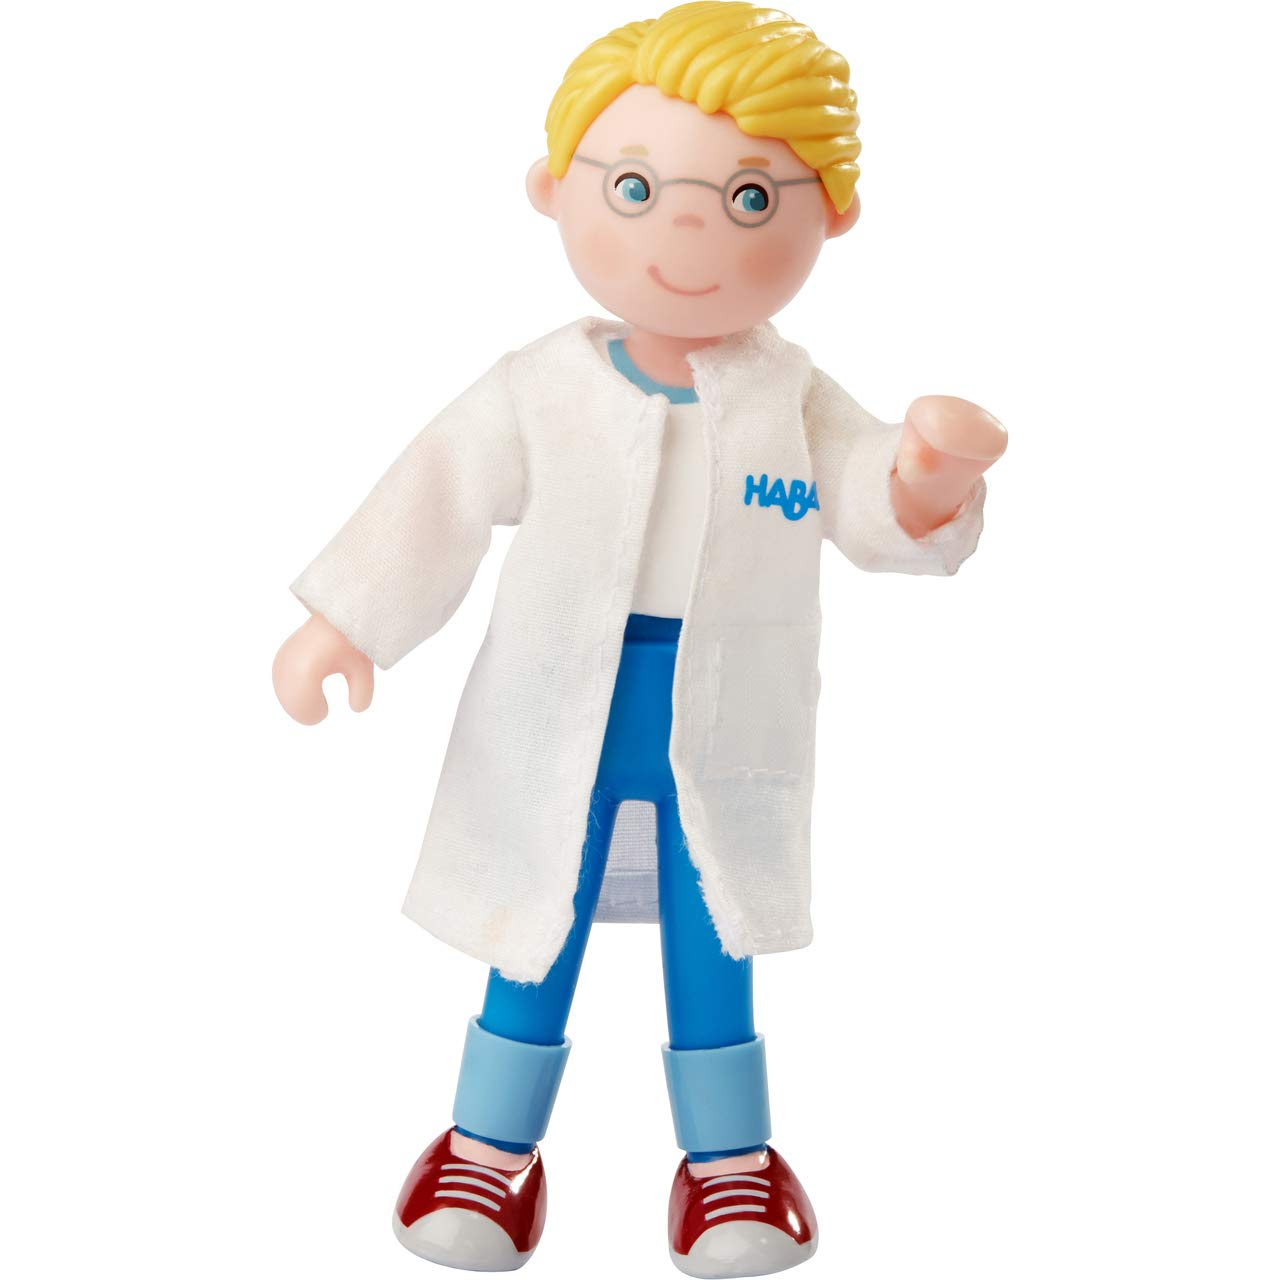 HABA Little Friends Veterinarian Andreas 4.5 Bendy Doll Figure with Posable Limbs and Removable Lab Coat 303894